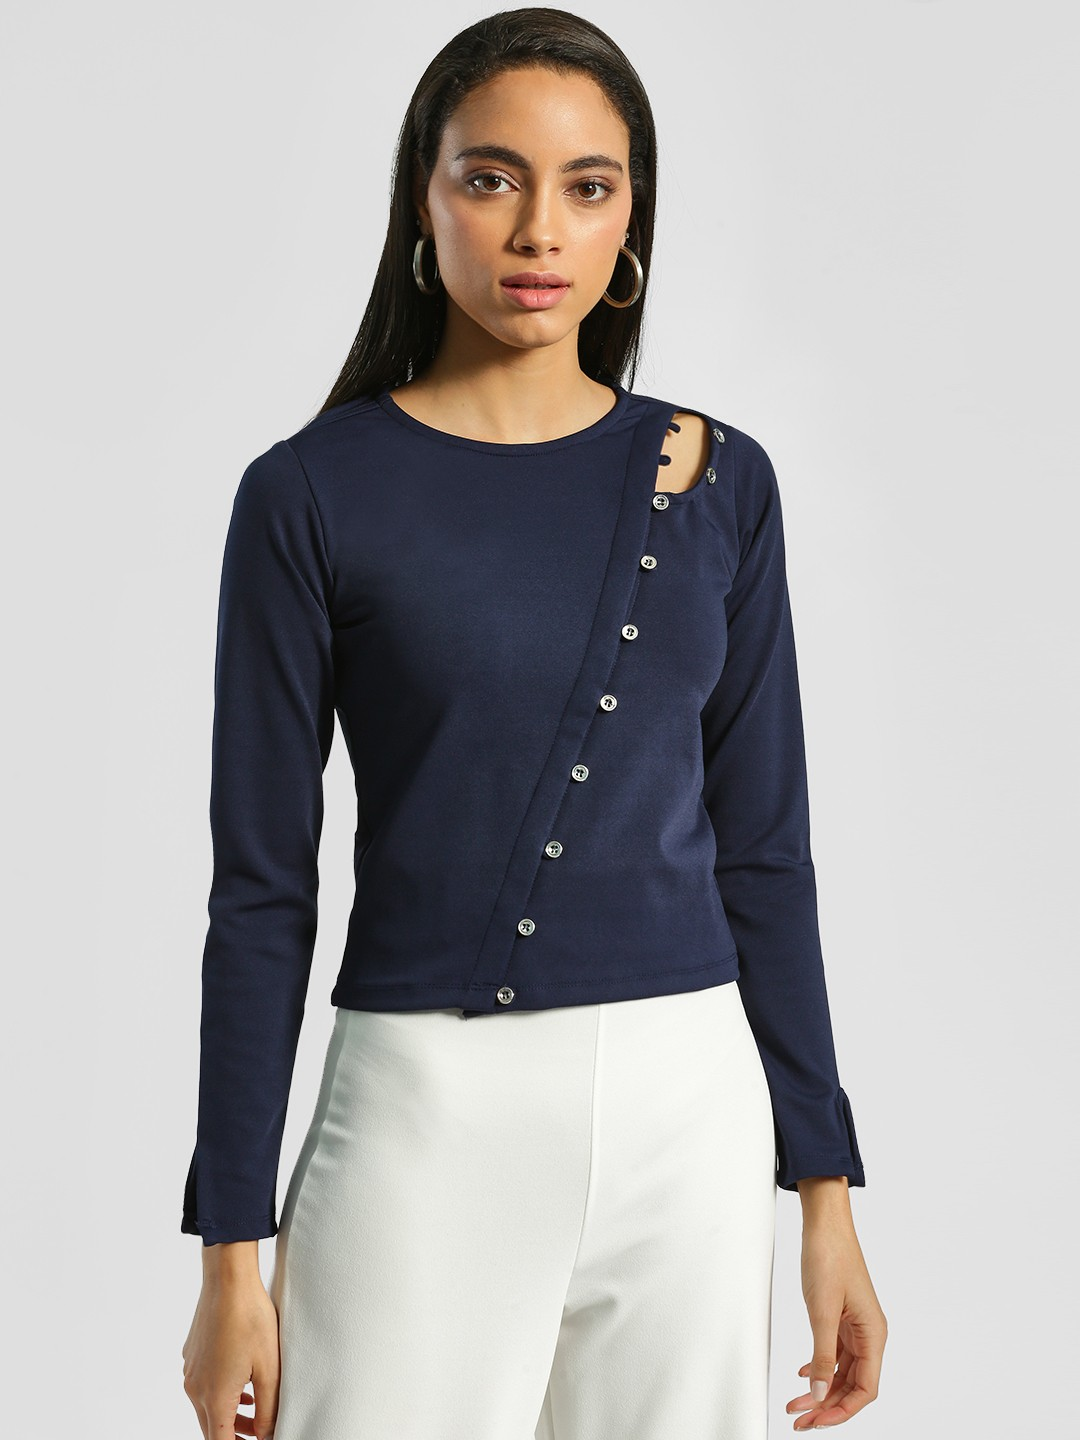 HEY Navy Asymmetric Button Detail Crop Top 1